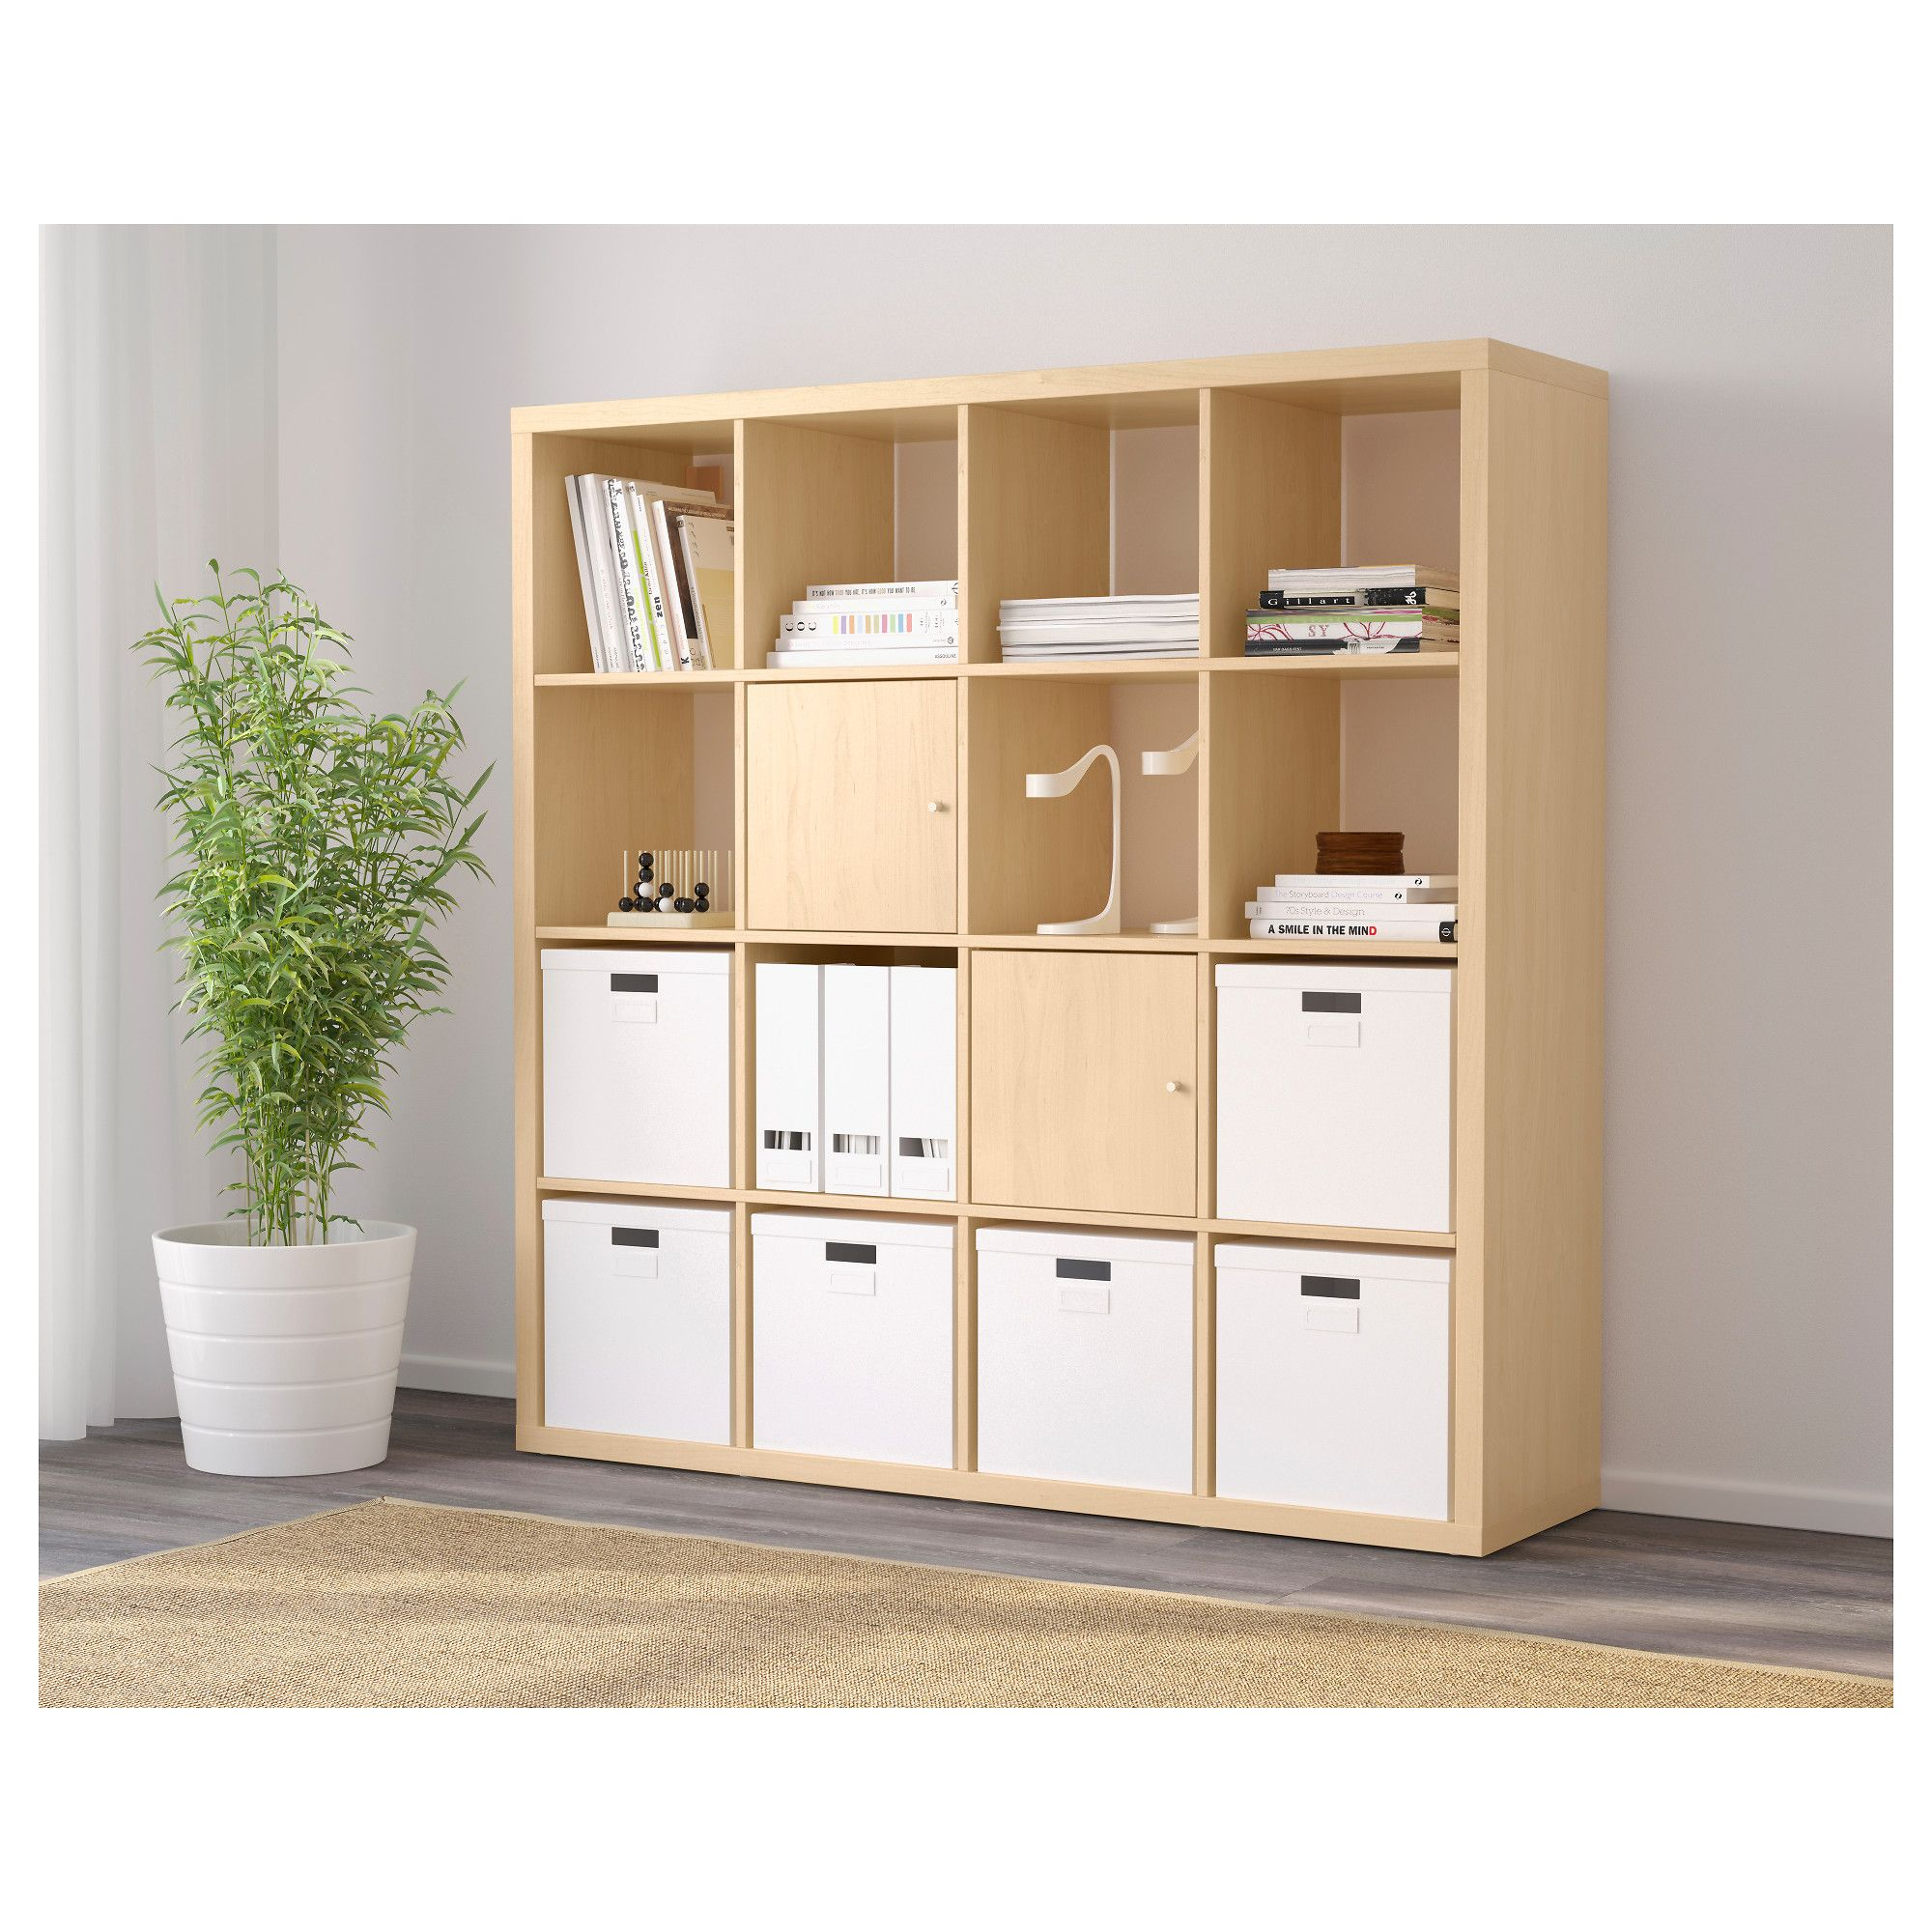 IKEA - KALLAX Shelf unit birch effect | ikea kallax in ...